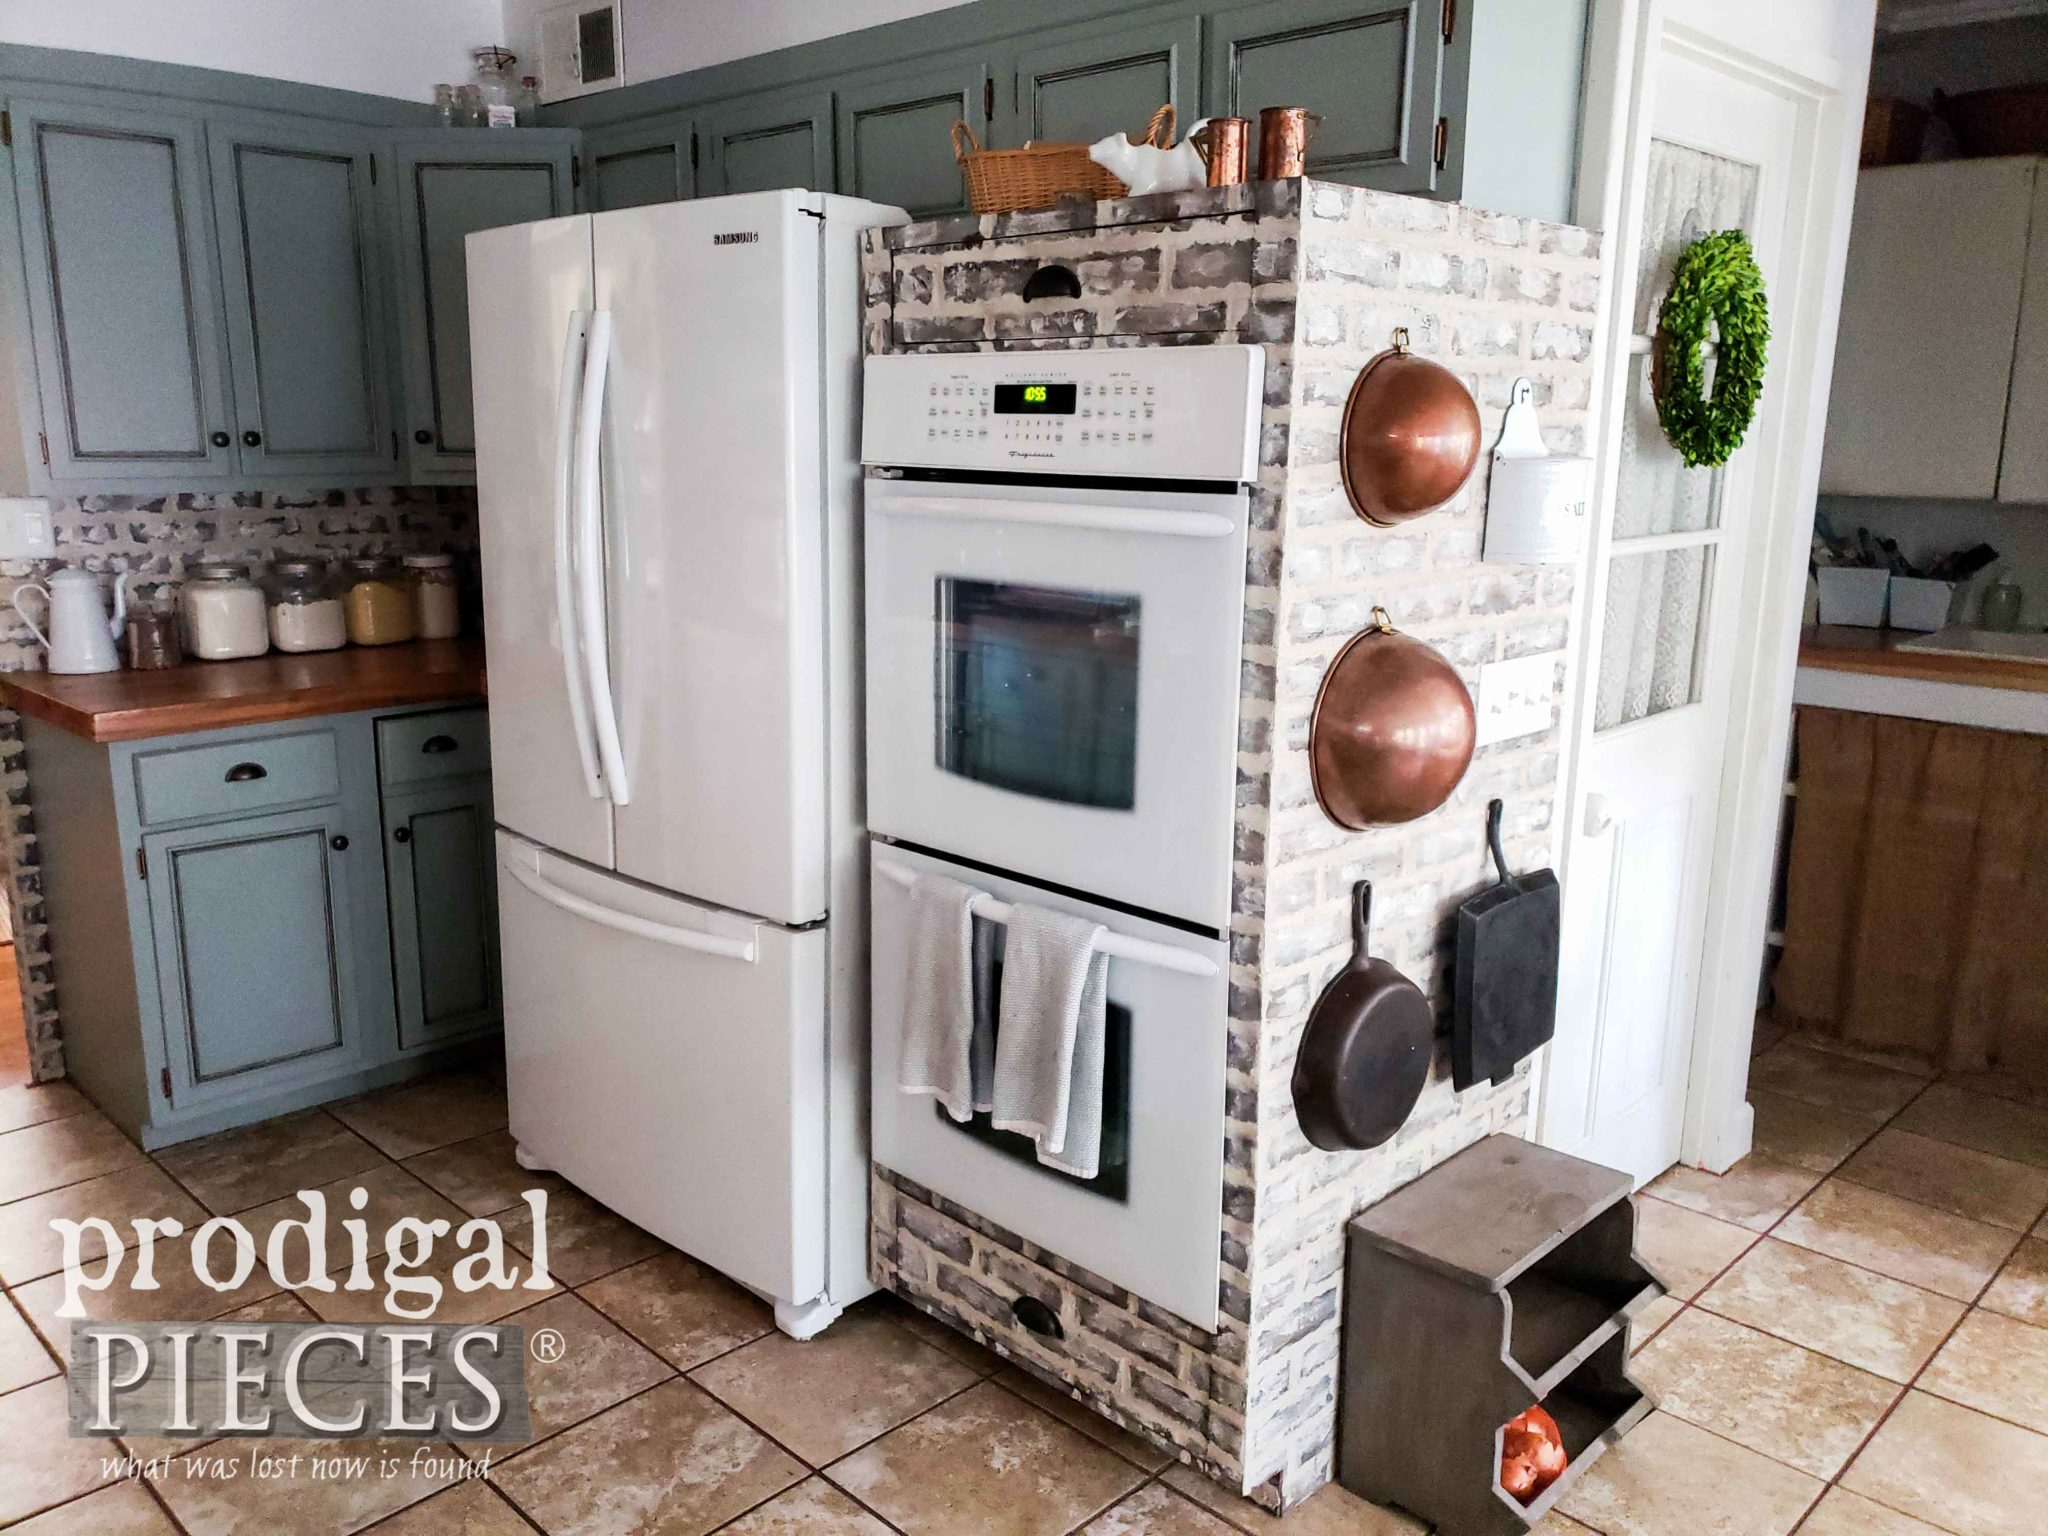 Farmhouse Kitchen Remodel with Custom Double-Oven Cabinet with Faux Brick Design by Prodigal Pieces | prodigalpieces.com